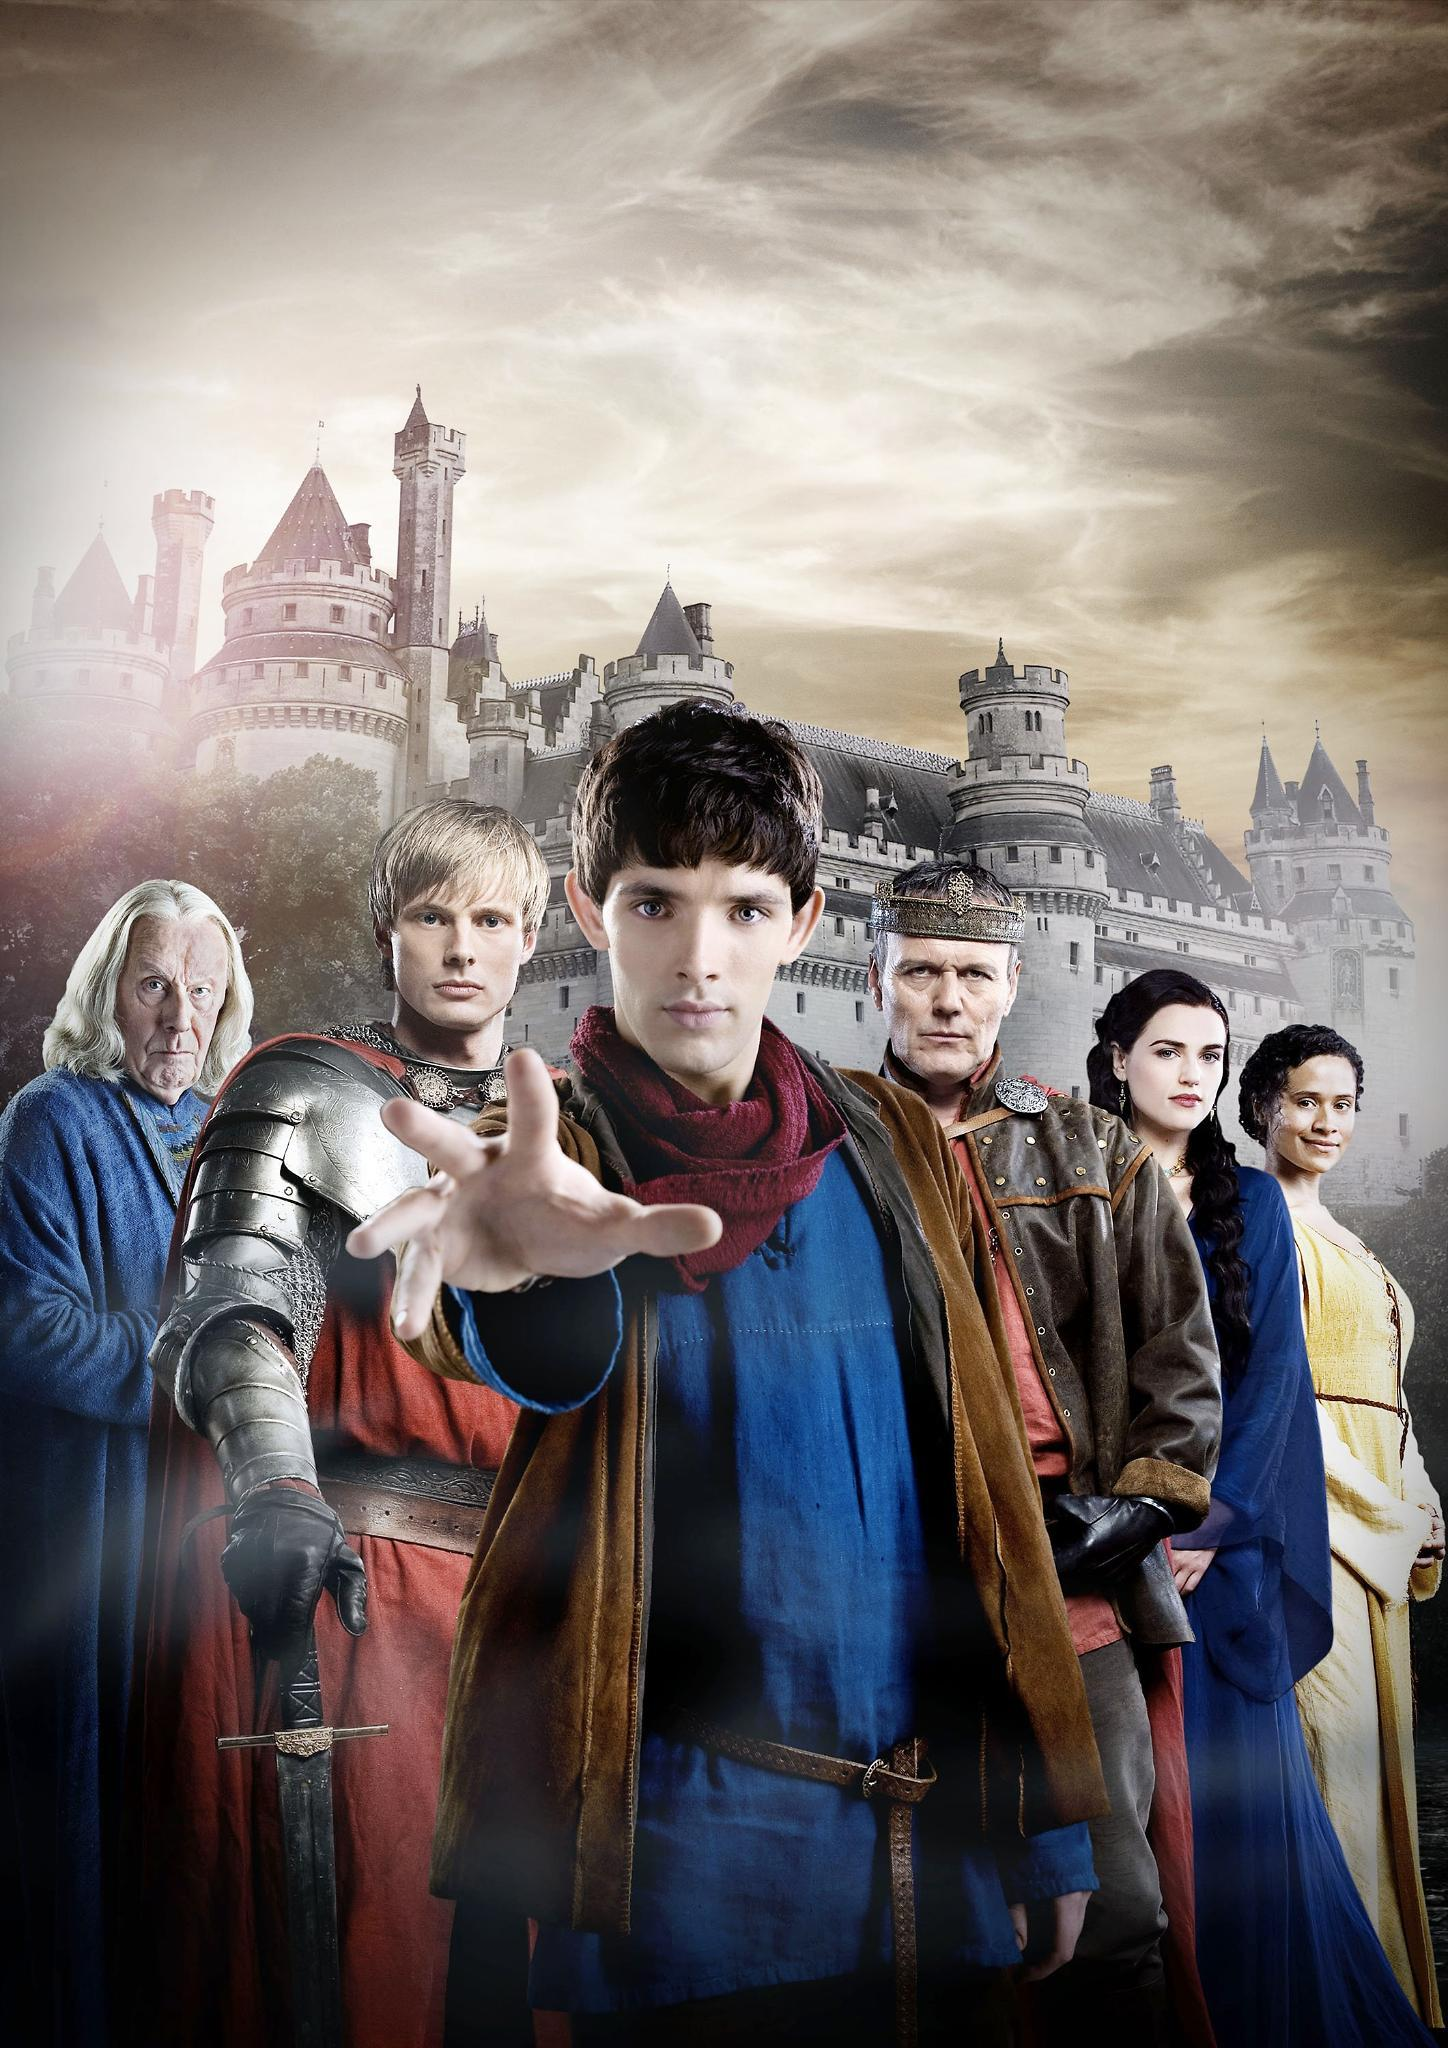 What Merlin Character Are You Like?